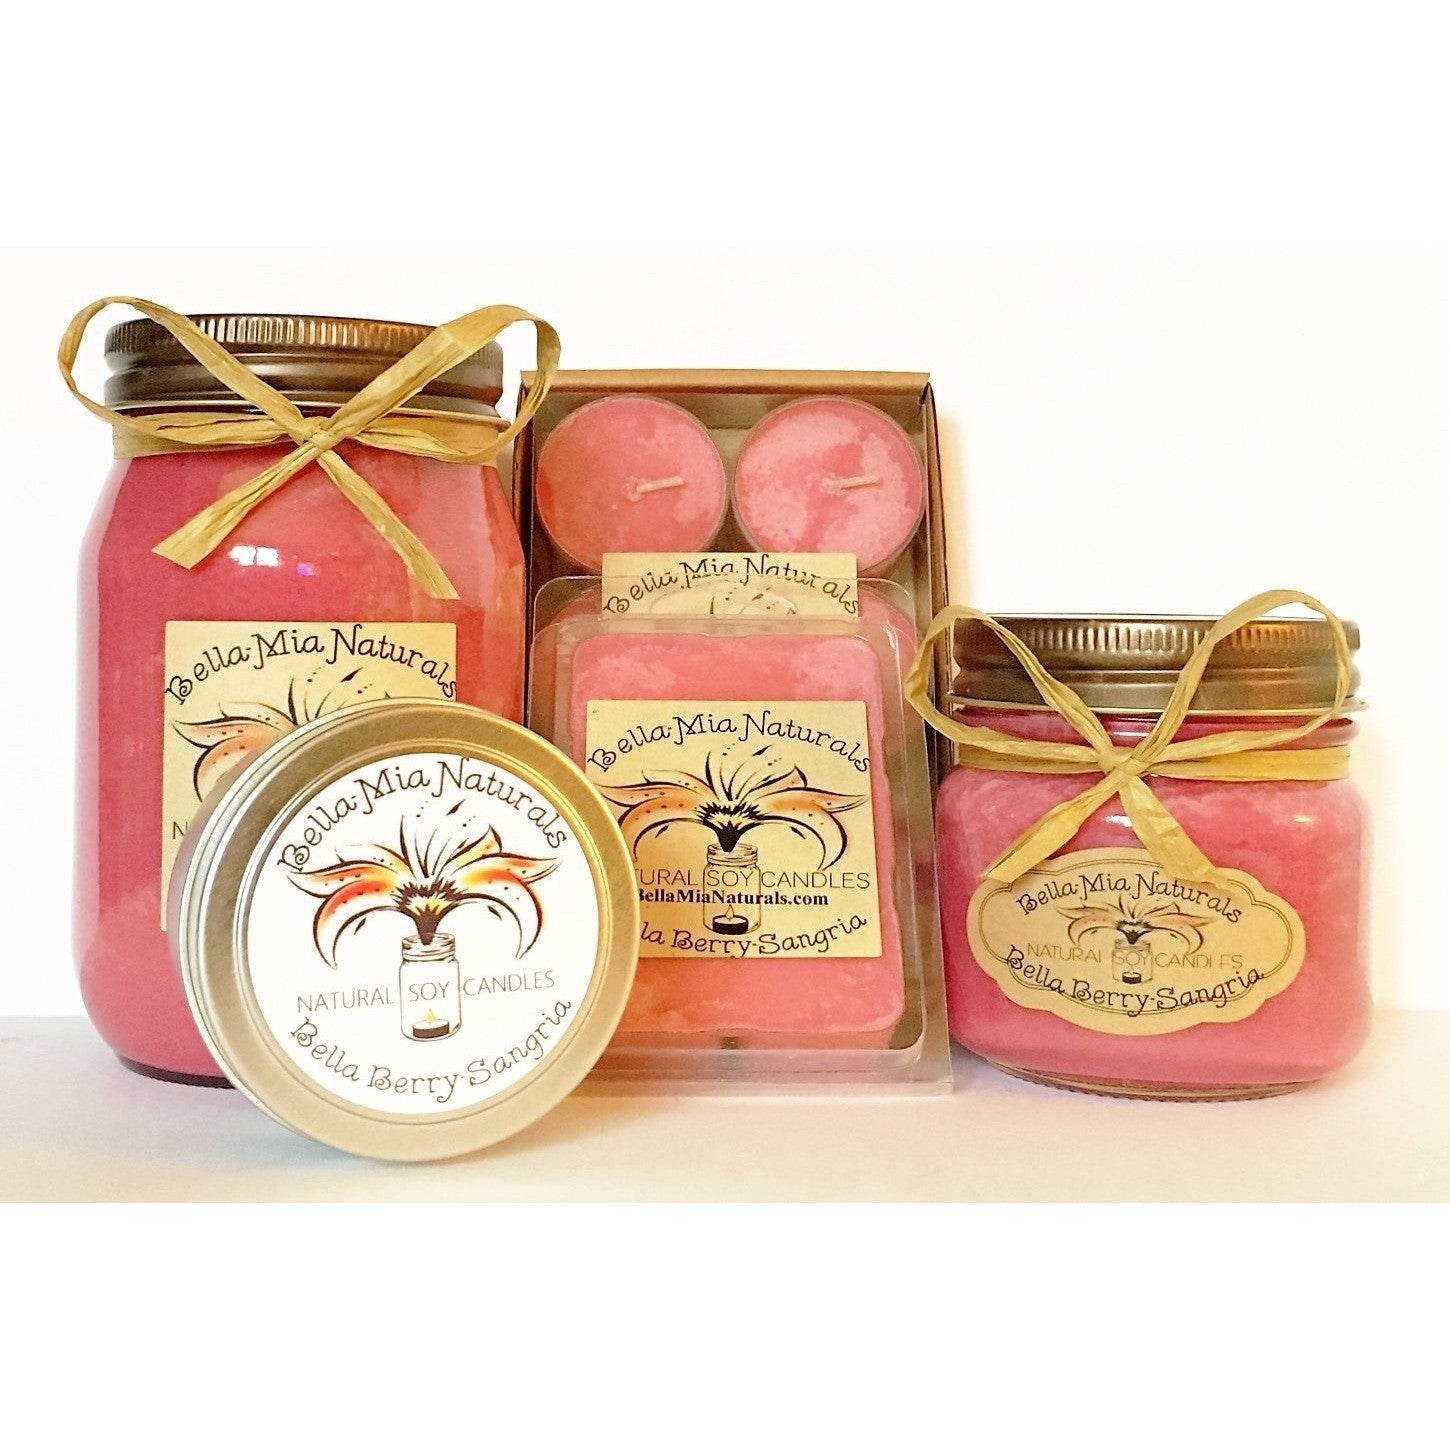 Bella Berry-Sangria Natural Hand Poured Soy Candles -  - Bella-Mia Naturals All Natural Soy Candles & Lip Balms - 1